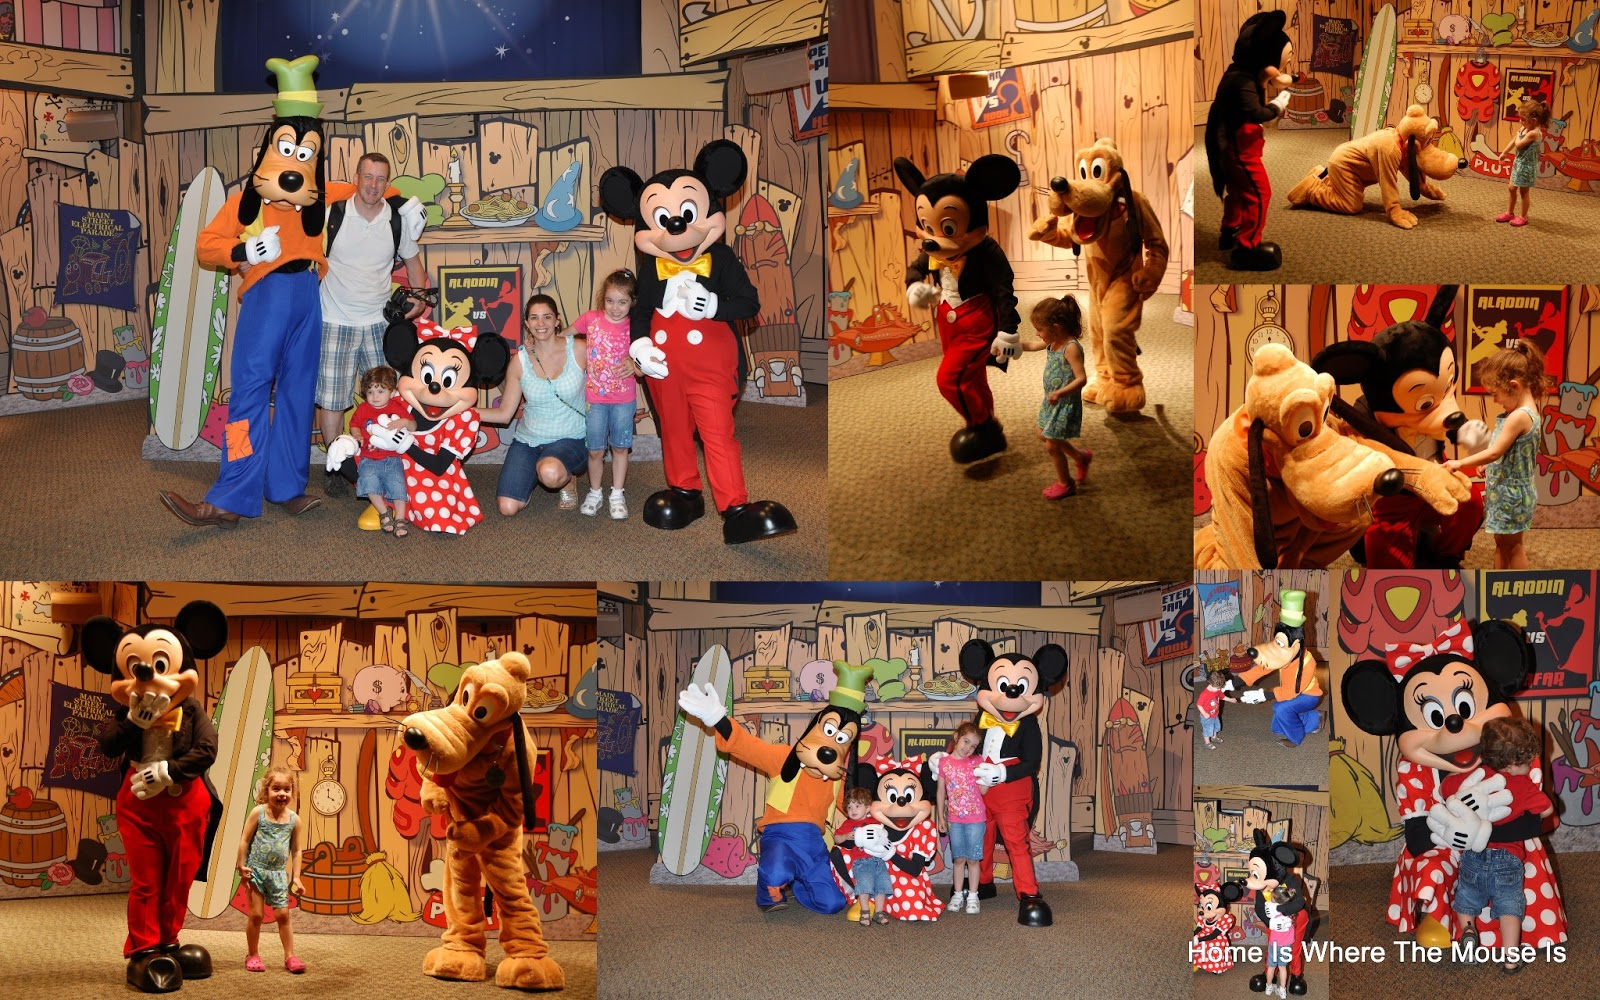 disney world character meet and greet